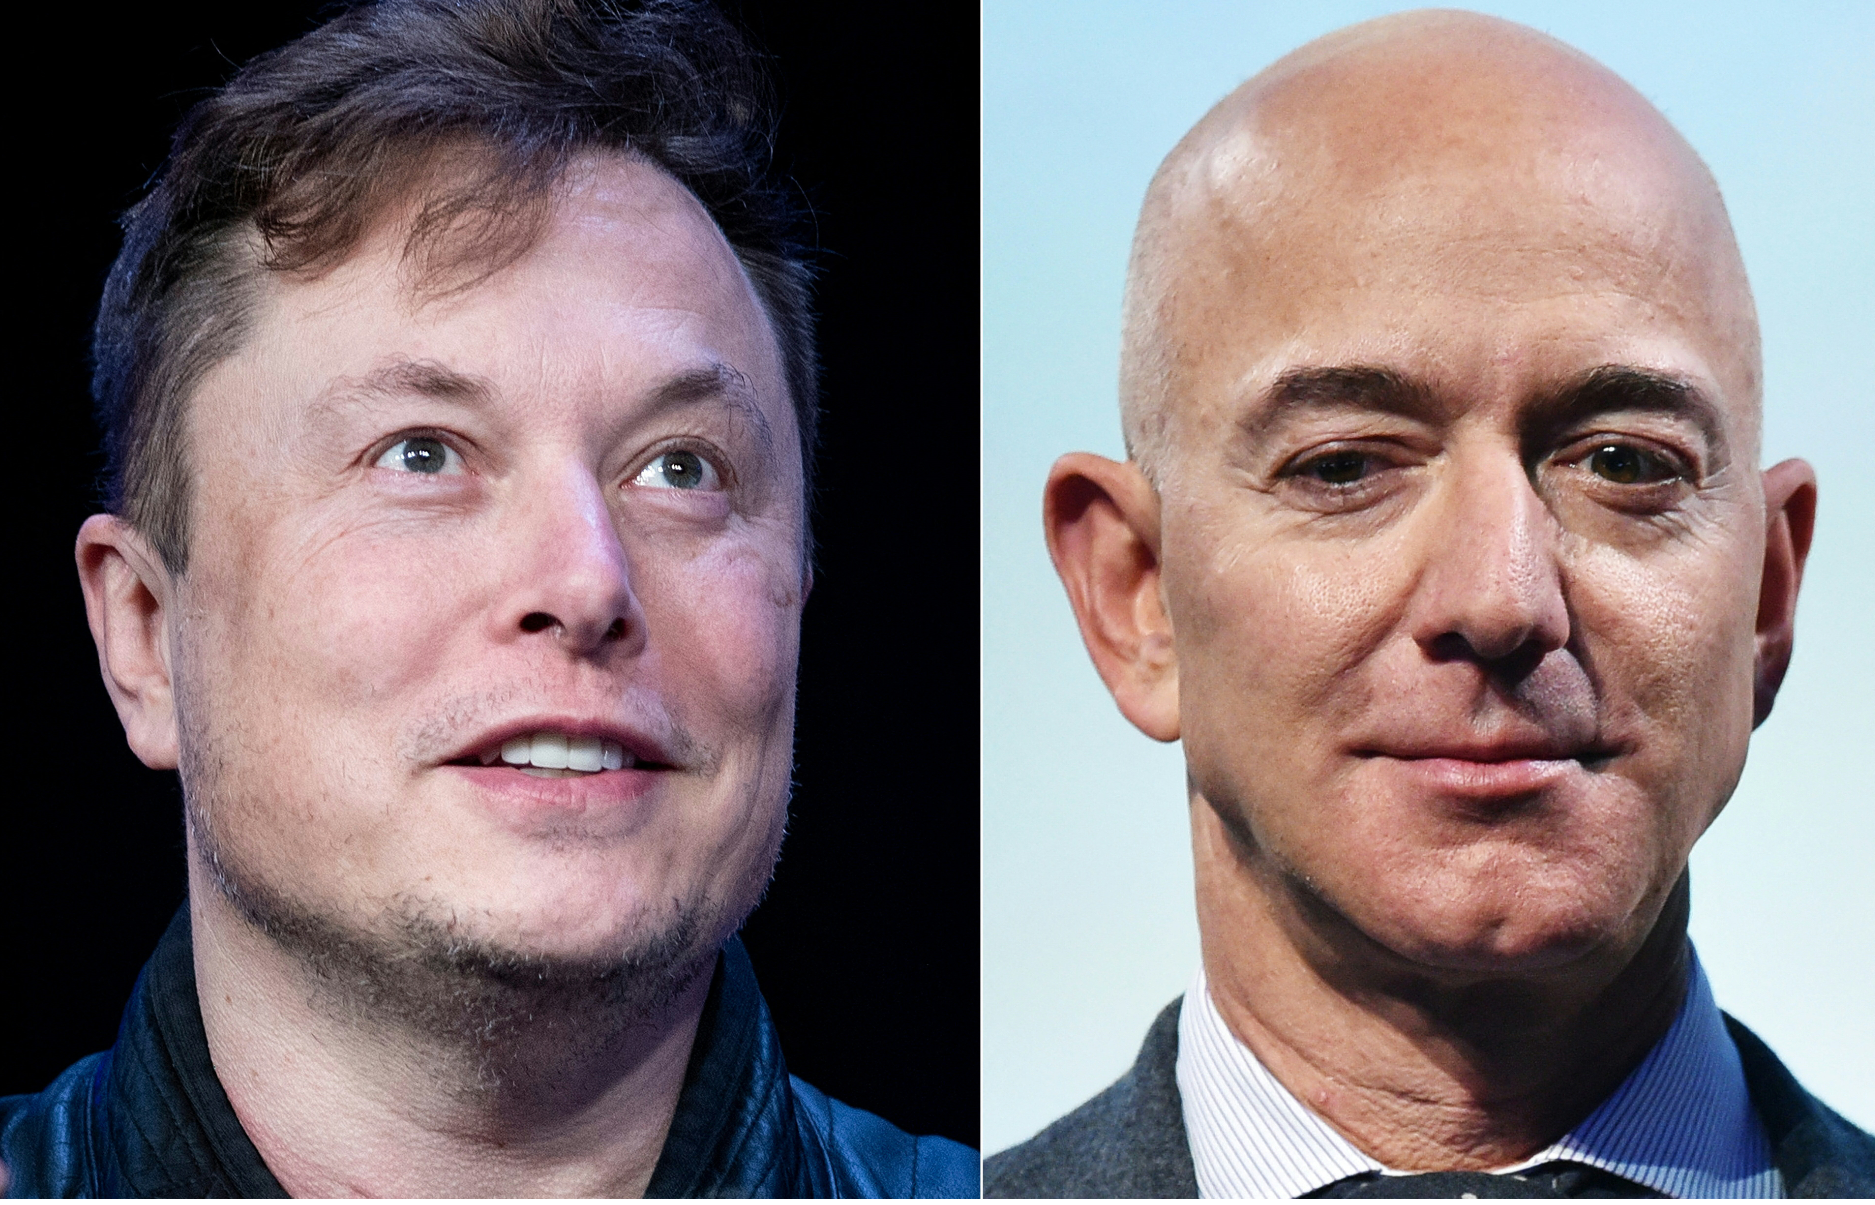 SpaceX founder Elon Musk (left) and Blue Origin founder Jeff Bezos (right). (File photos: AFP)